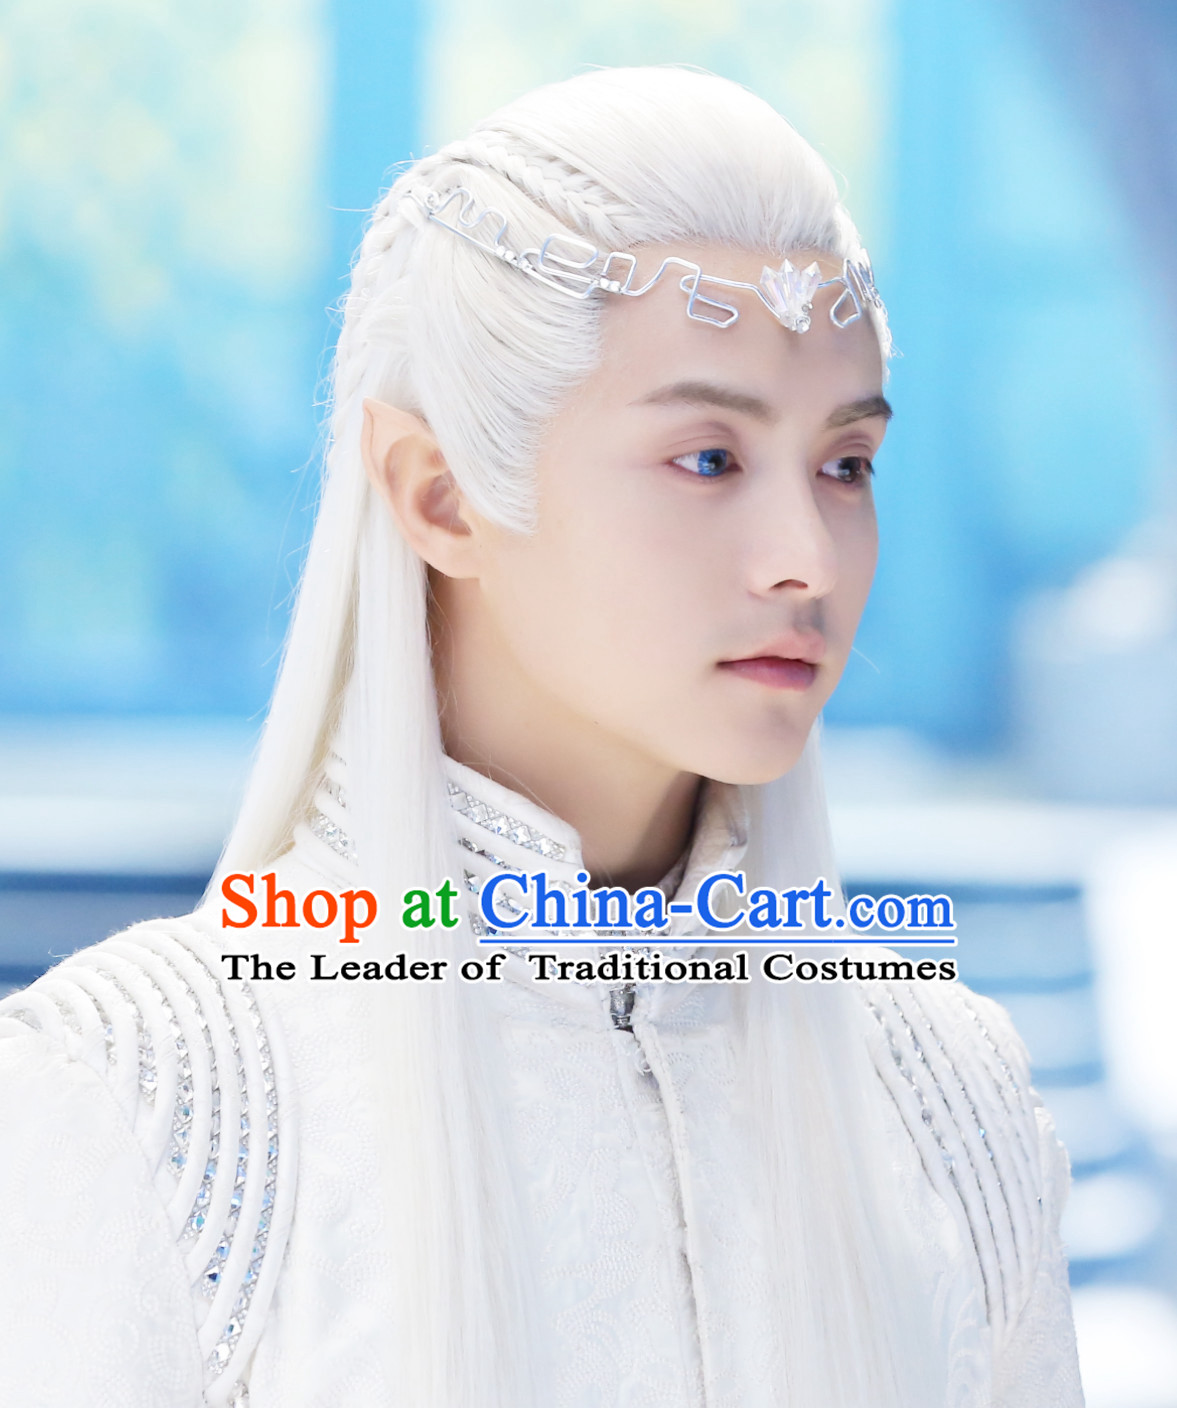 Ancient Chinese Fantasy Drama Style White Long Wigs and Hair Jewelry for Men